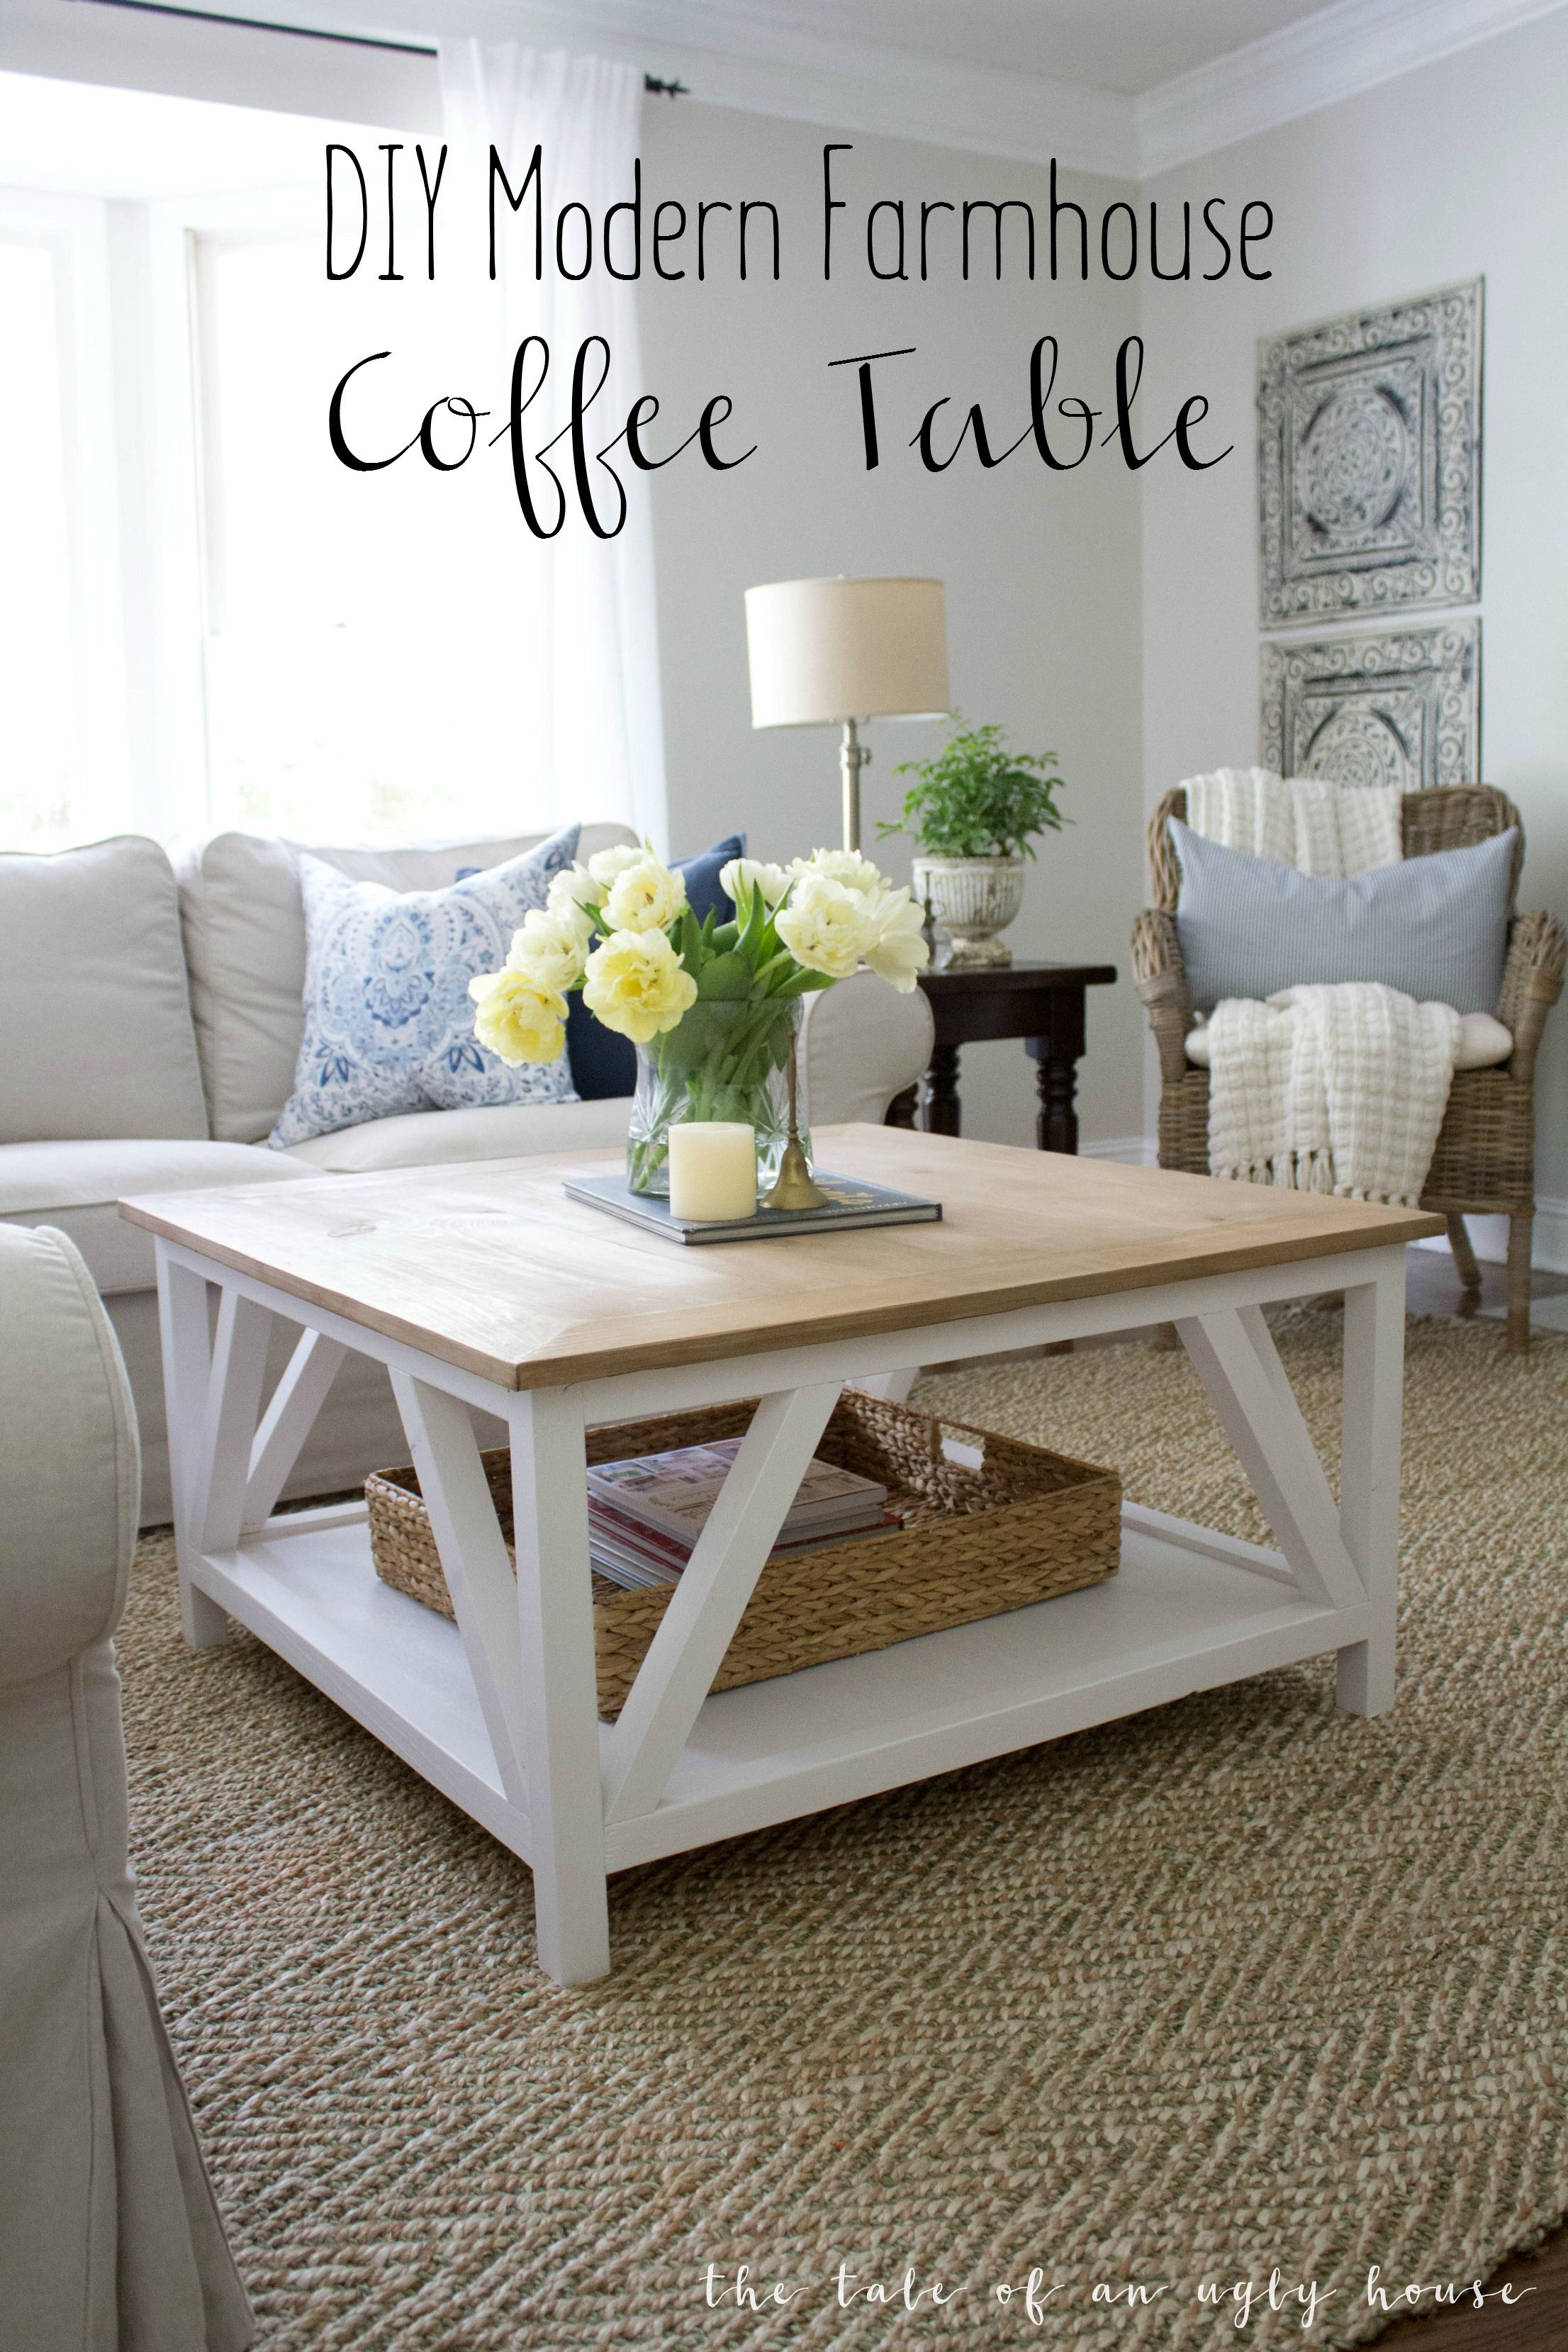 How to build a diy modern farmhouse coffee table classic Diy farmhouse table